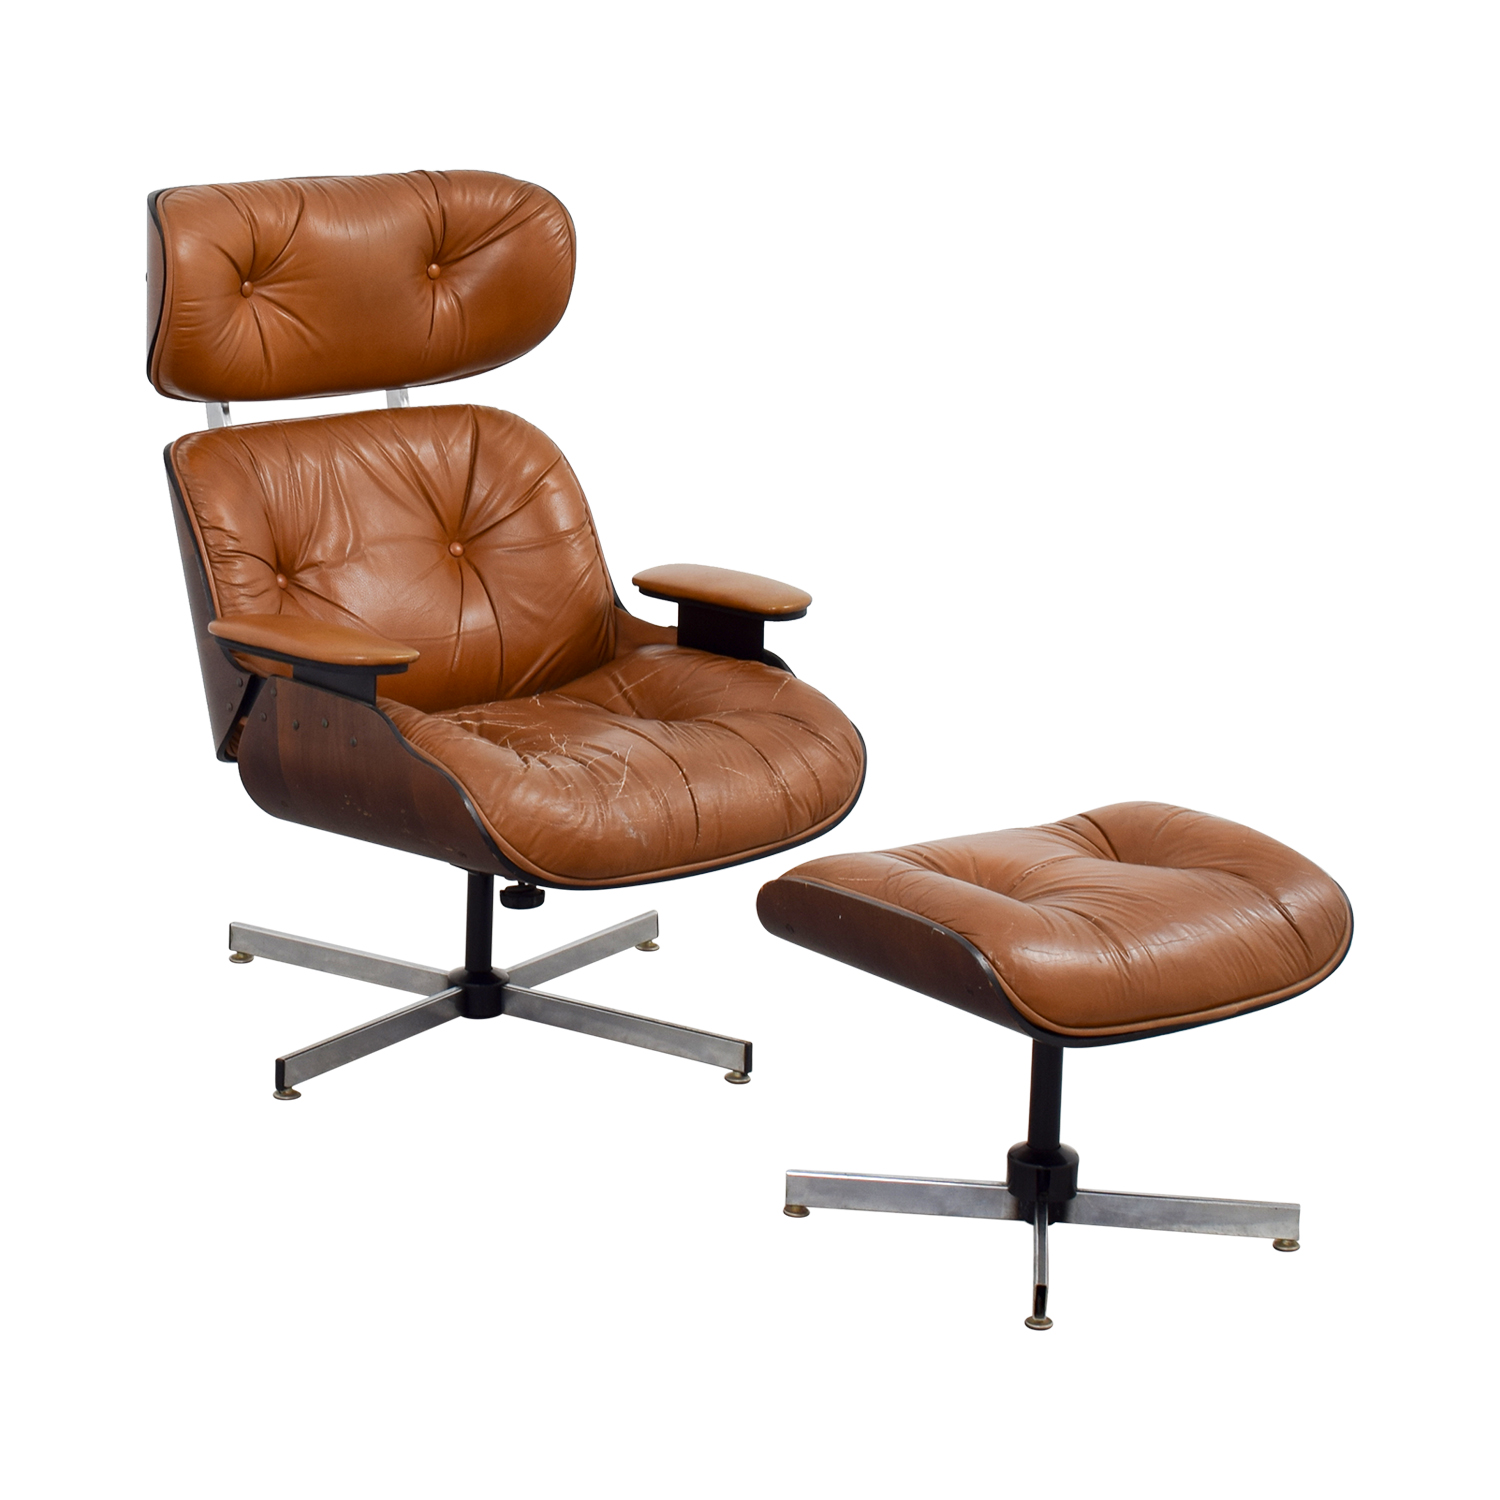 ... Eames Replica Leather Chair With Ottoman Sale ...